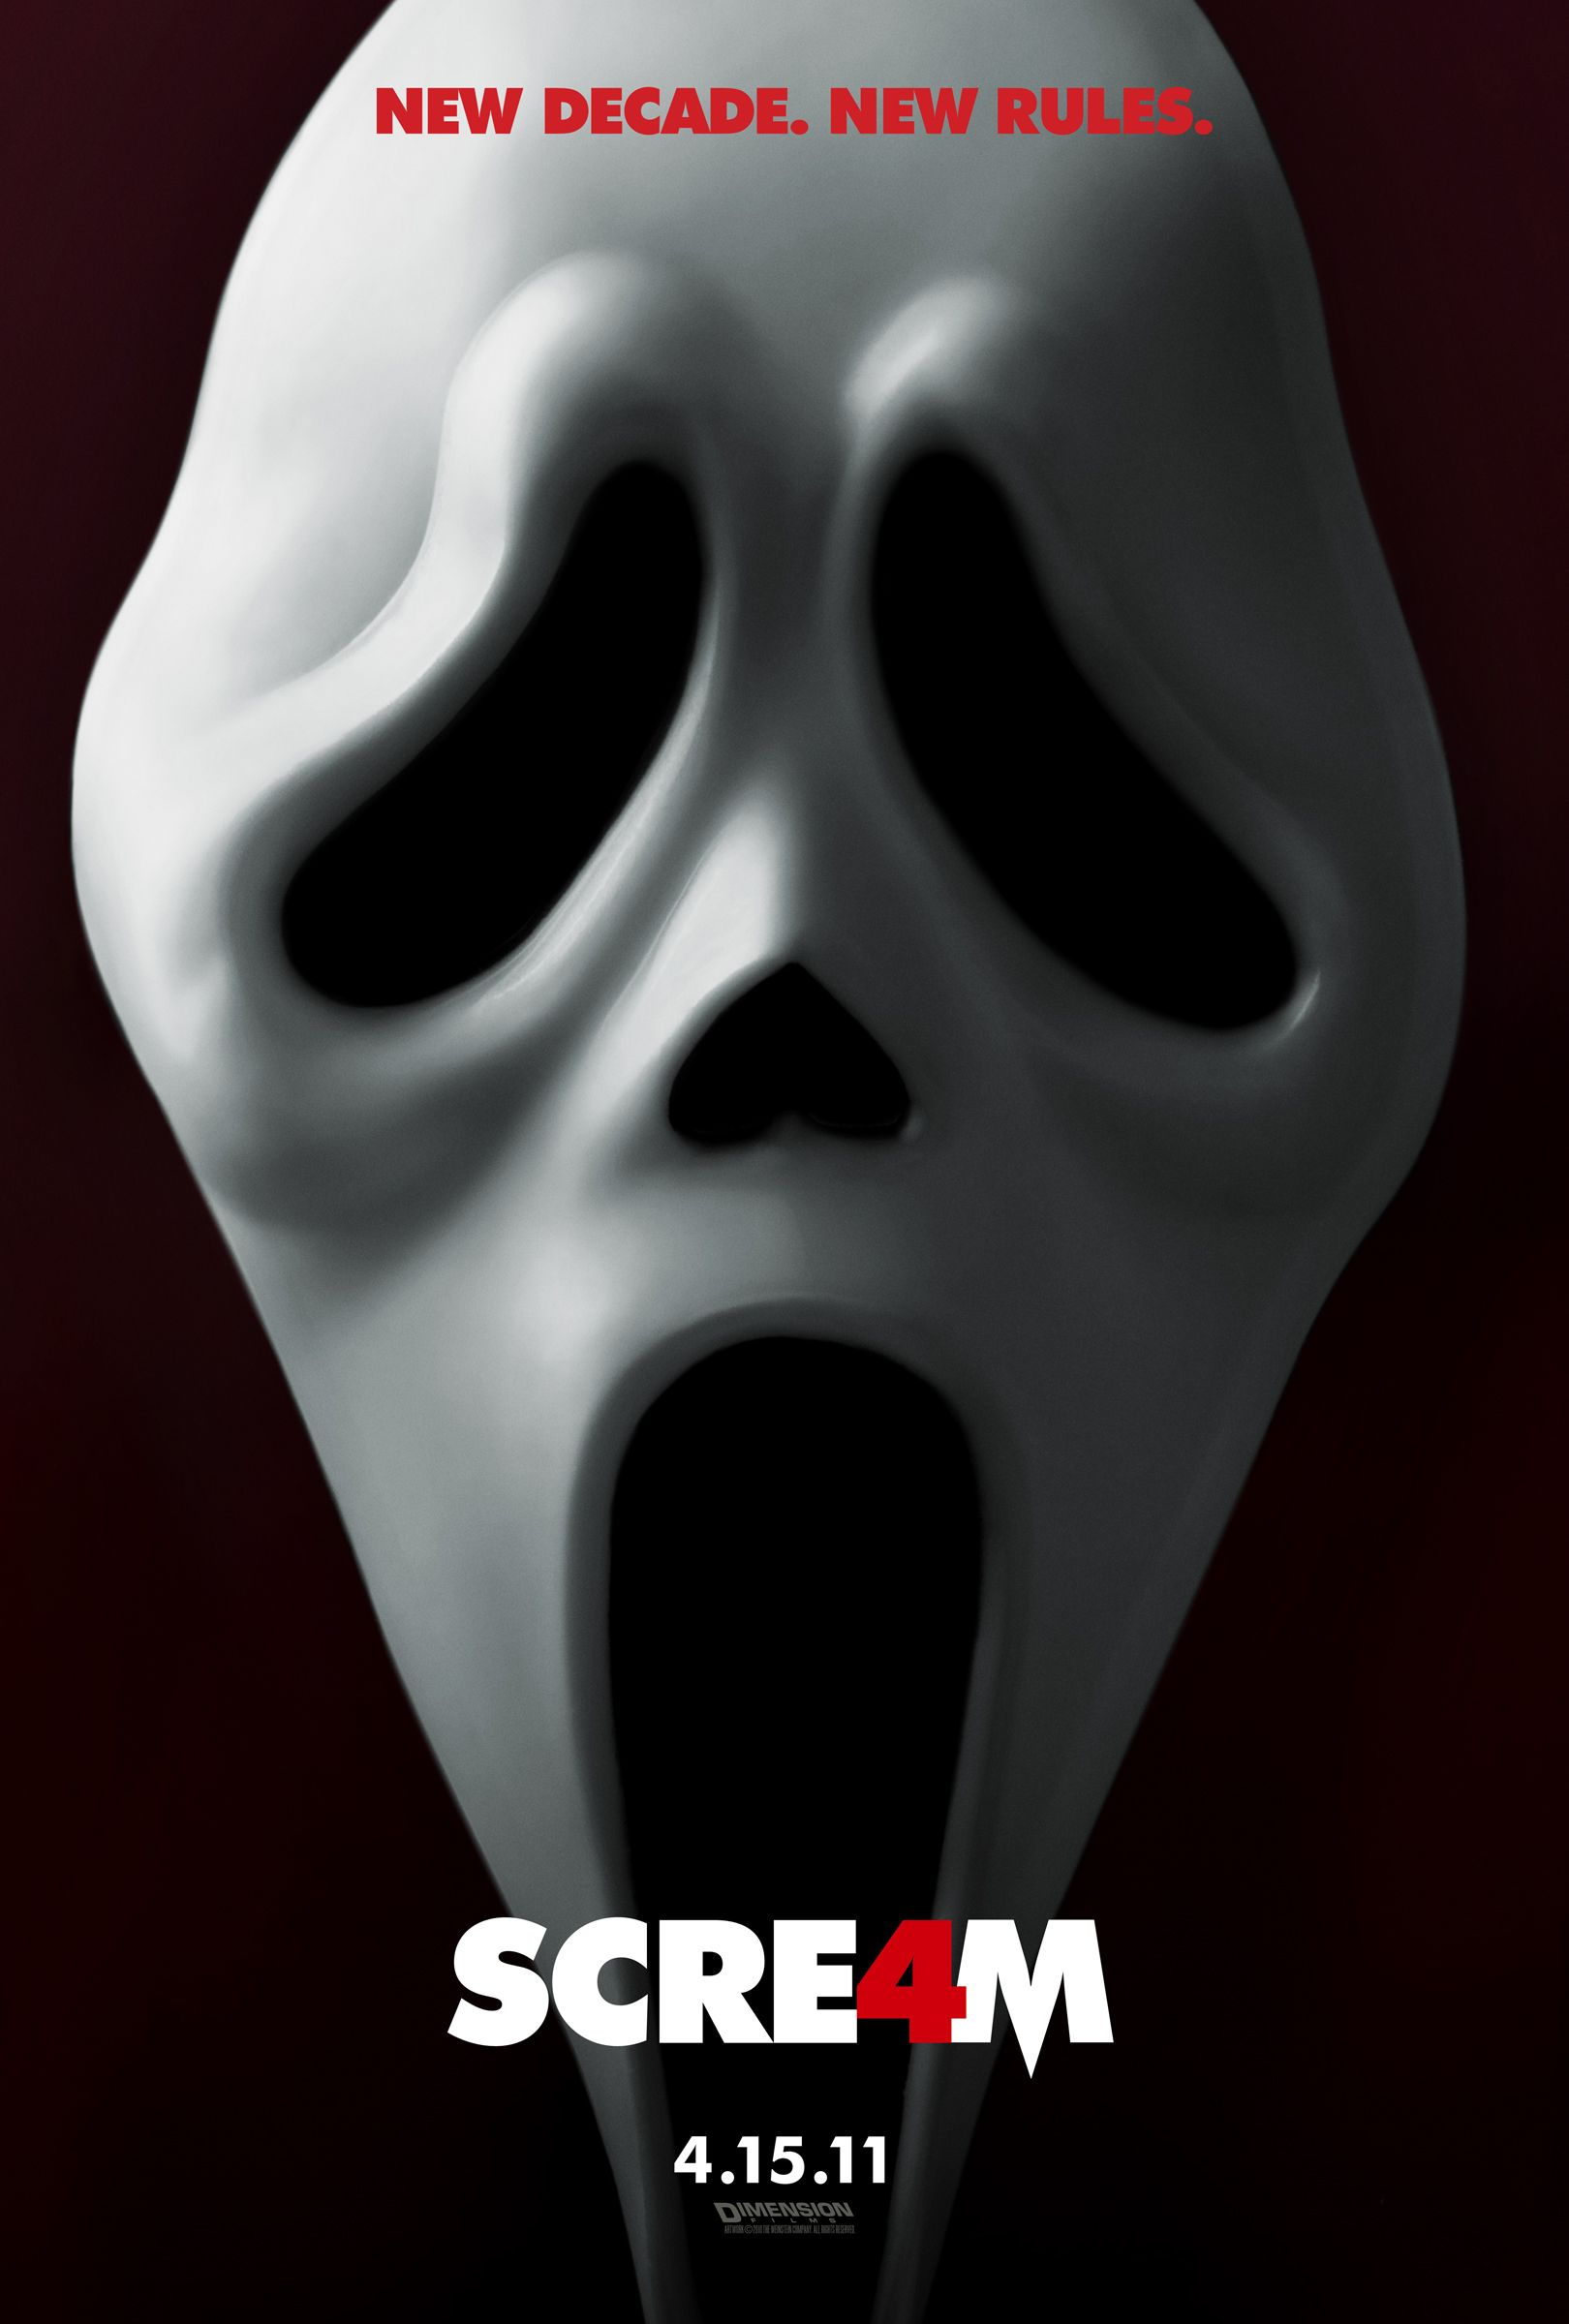 Scream images SCRE4M HD wallpaper and background photos (19907281)